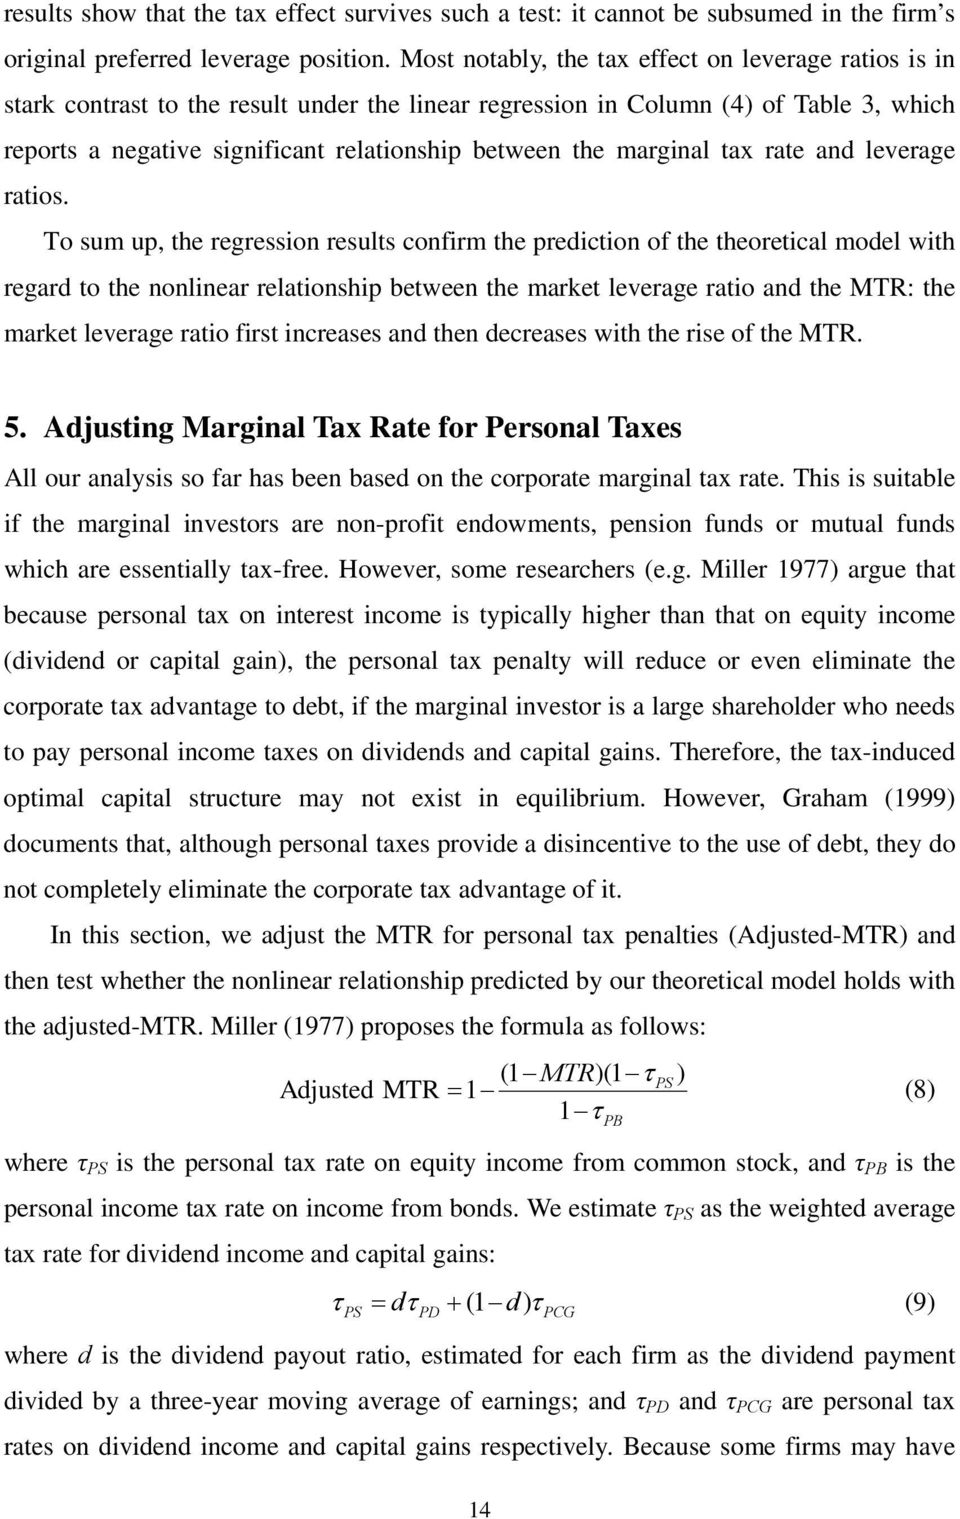 marginal tax rate and leverage ratios.